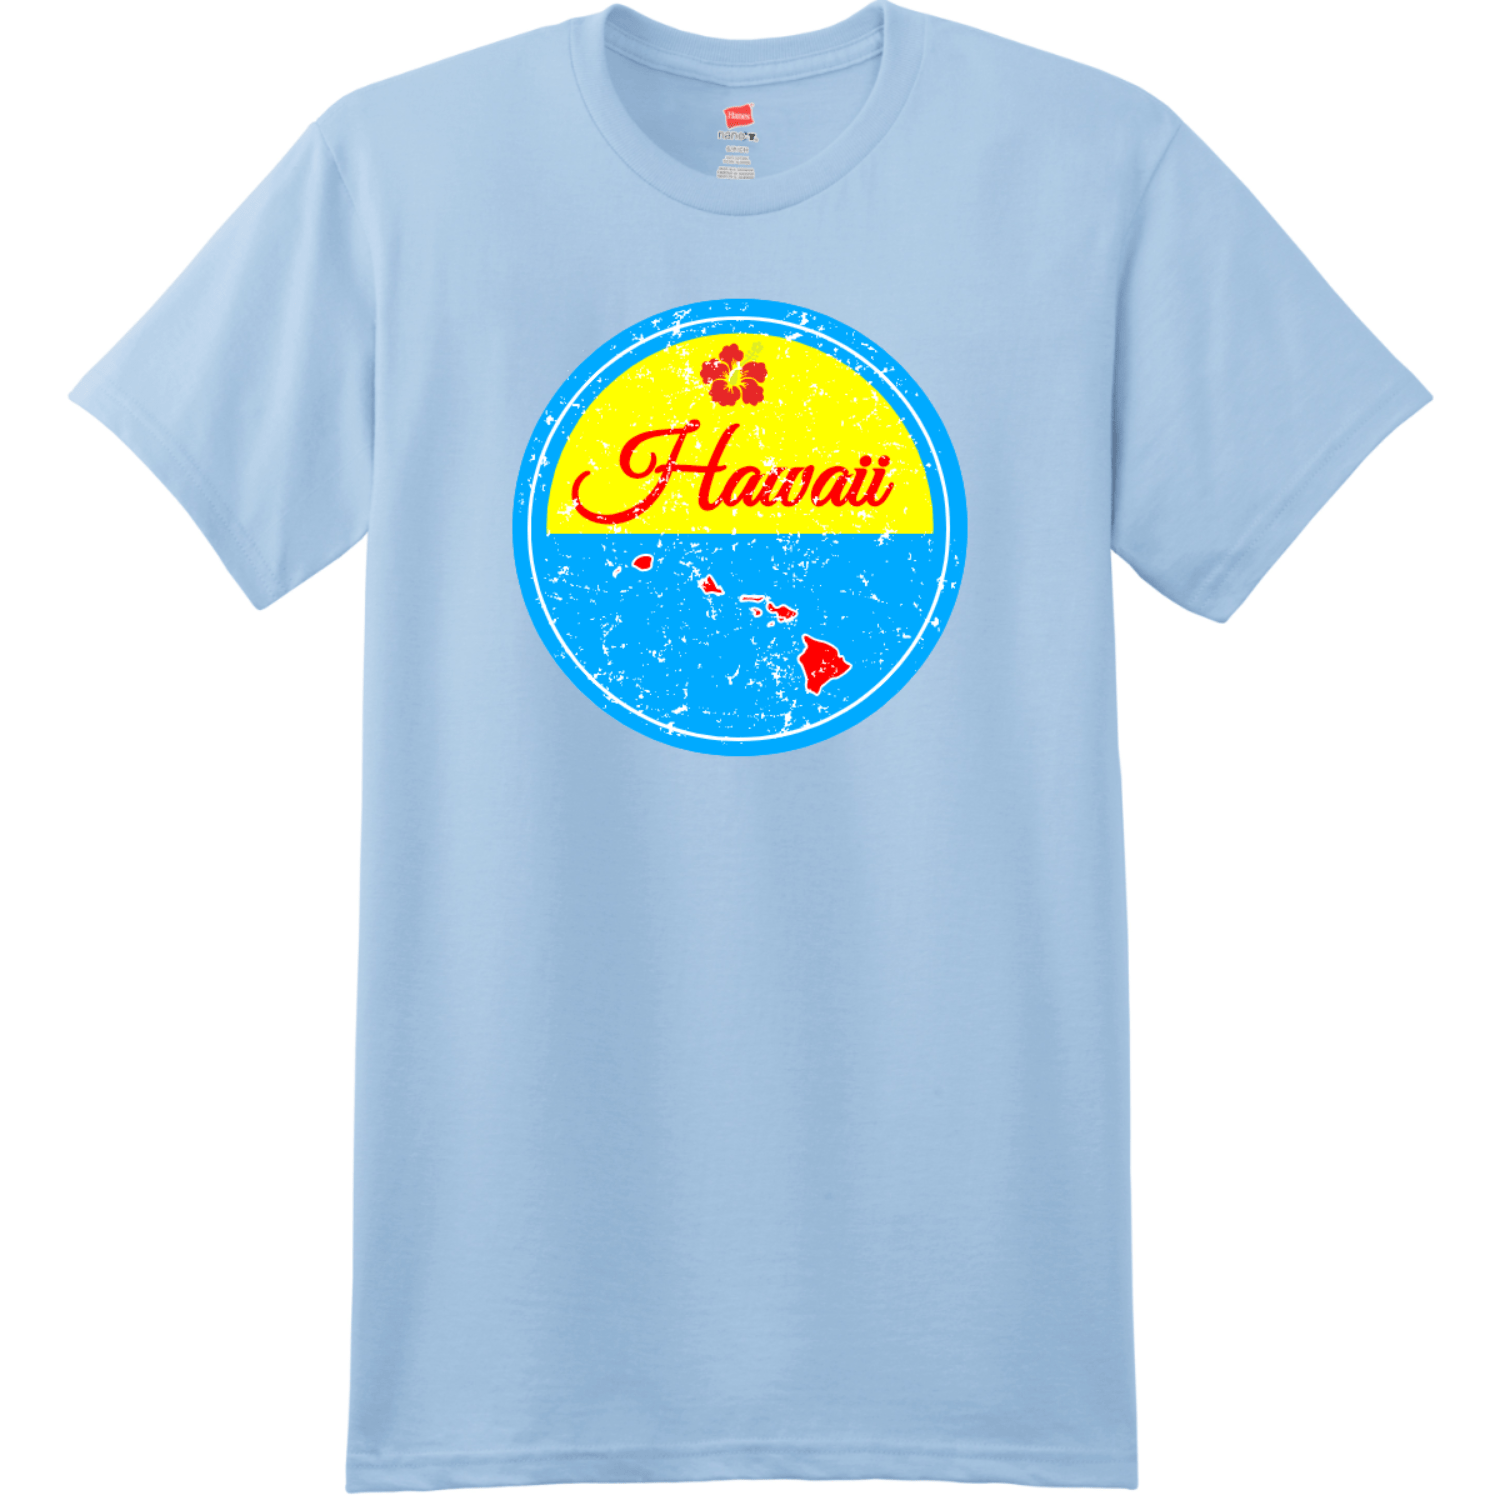 Hawaii Islands State Retro T Shirt Light Blue Hanes Nano 4980 Ringspun Cotton T Shirt